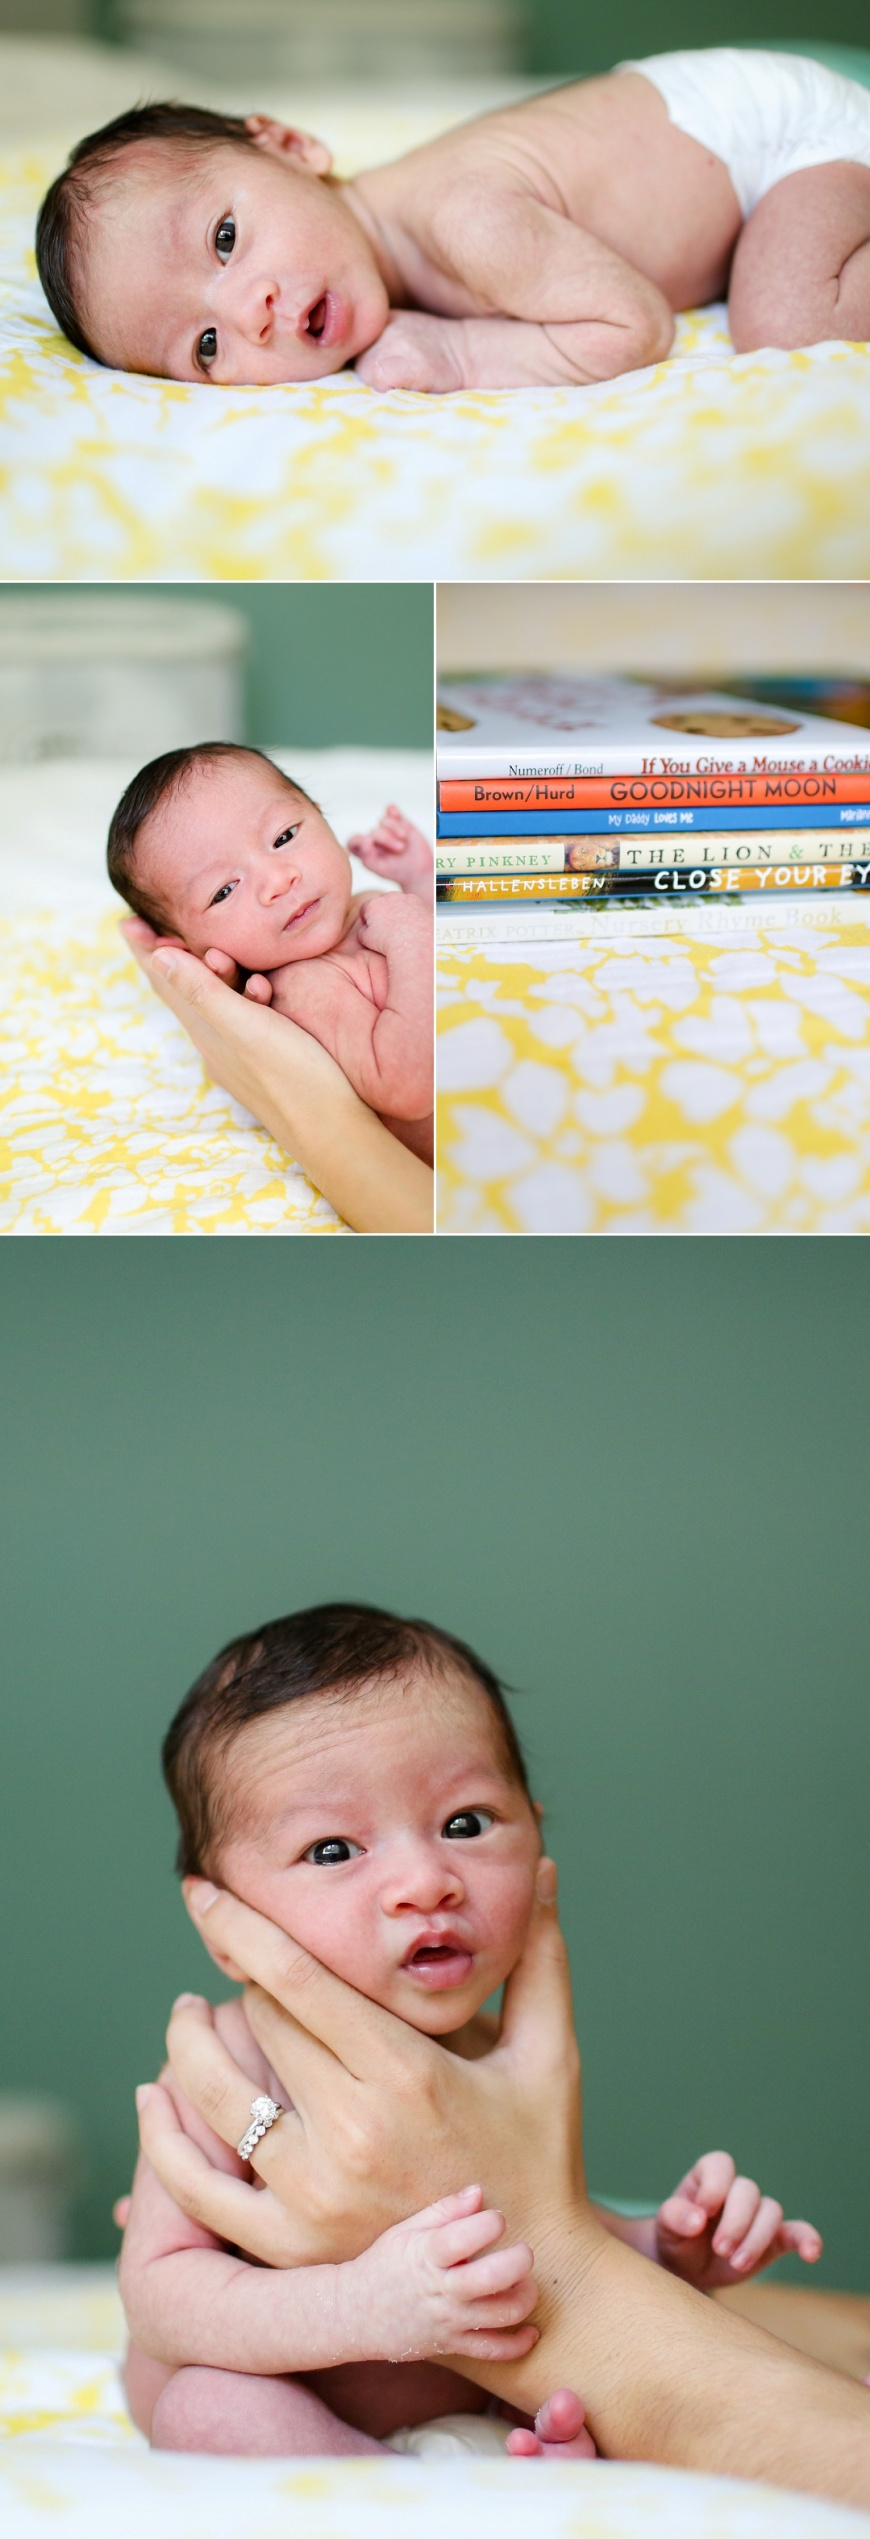 Menlo-Park-Newborn-Photographer_1015.jpg